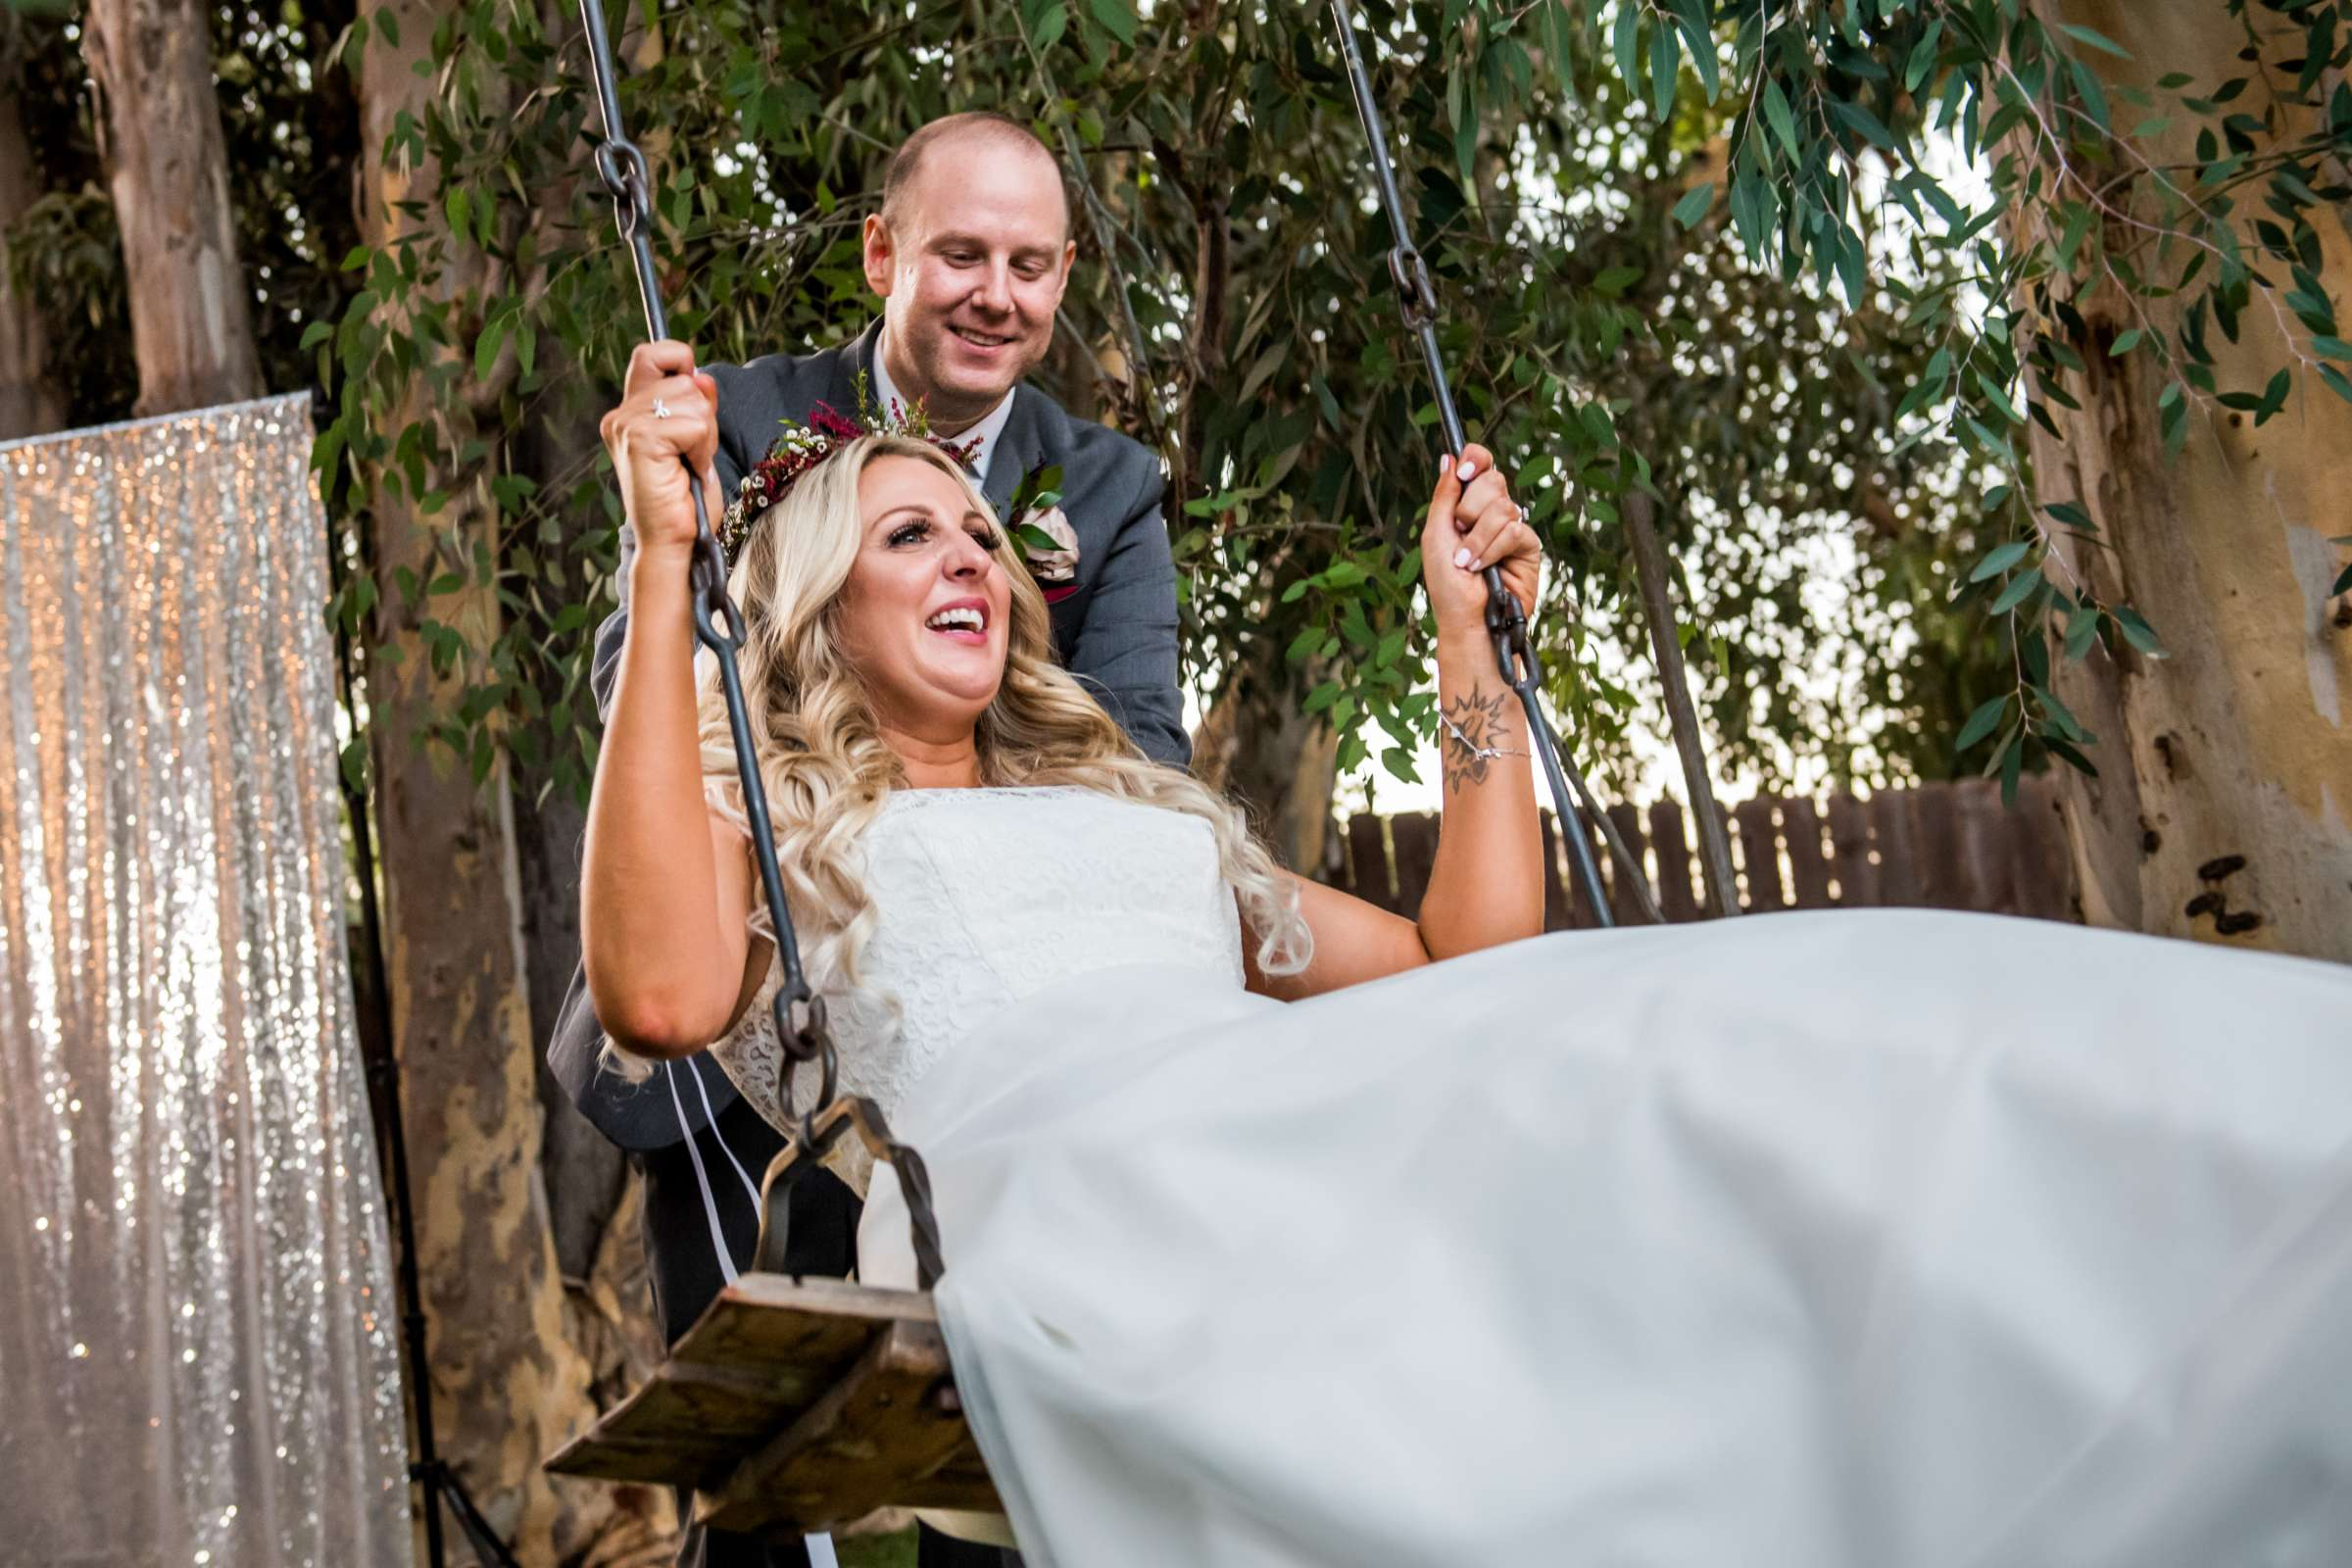 Twin Oaks House & Gardens Wedding Estate Wedding, Brittany and Sean Wedding Photo #119 by True Photography